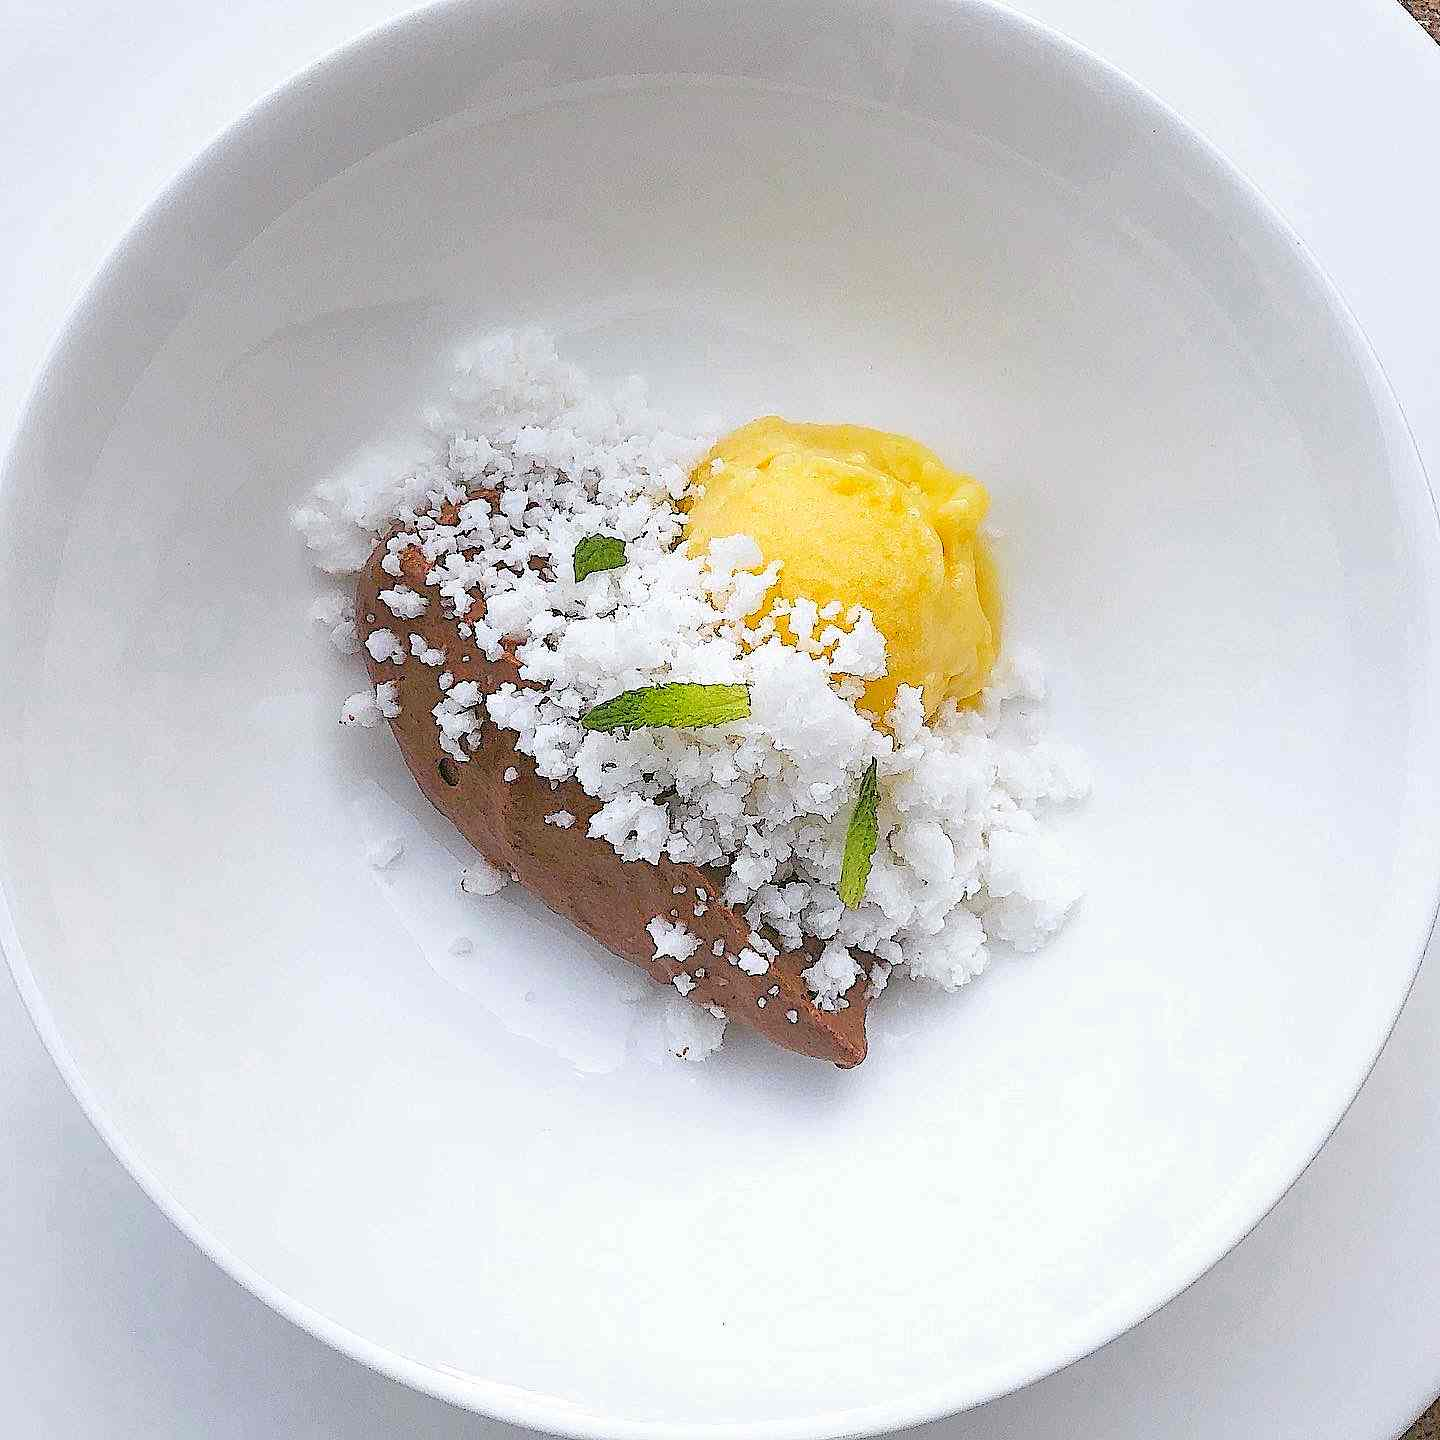 Mint Chocolate Mousse with coconut and mango